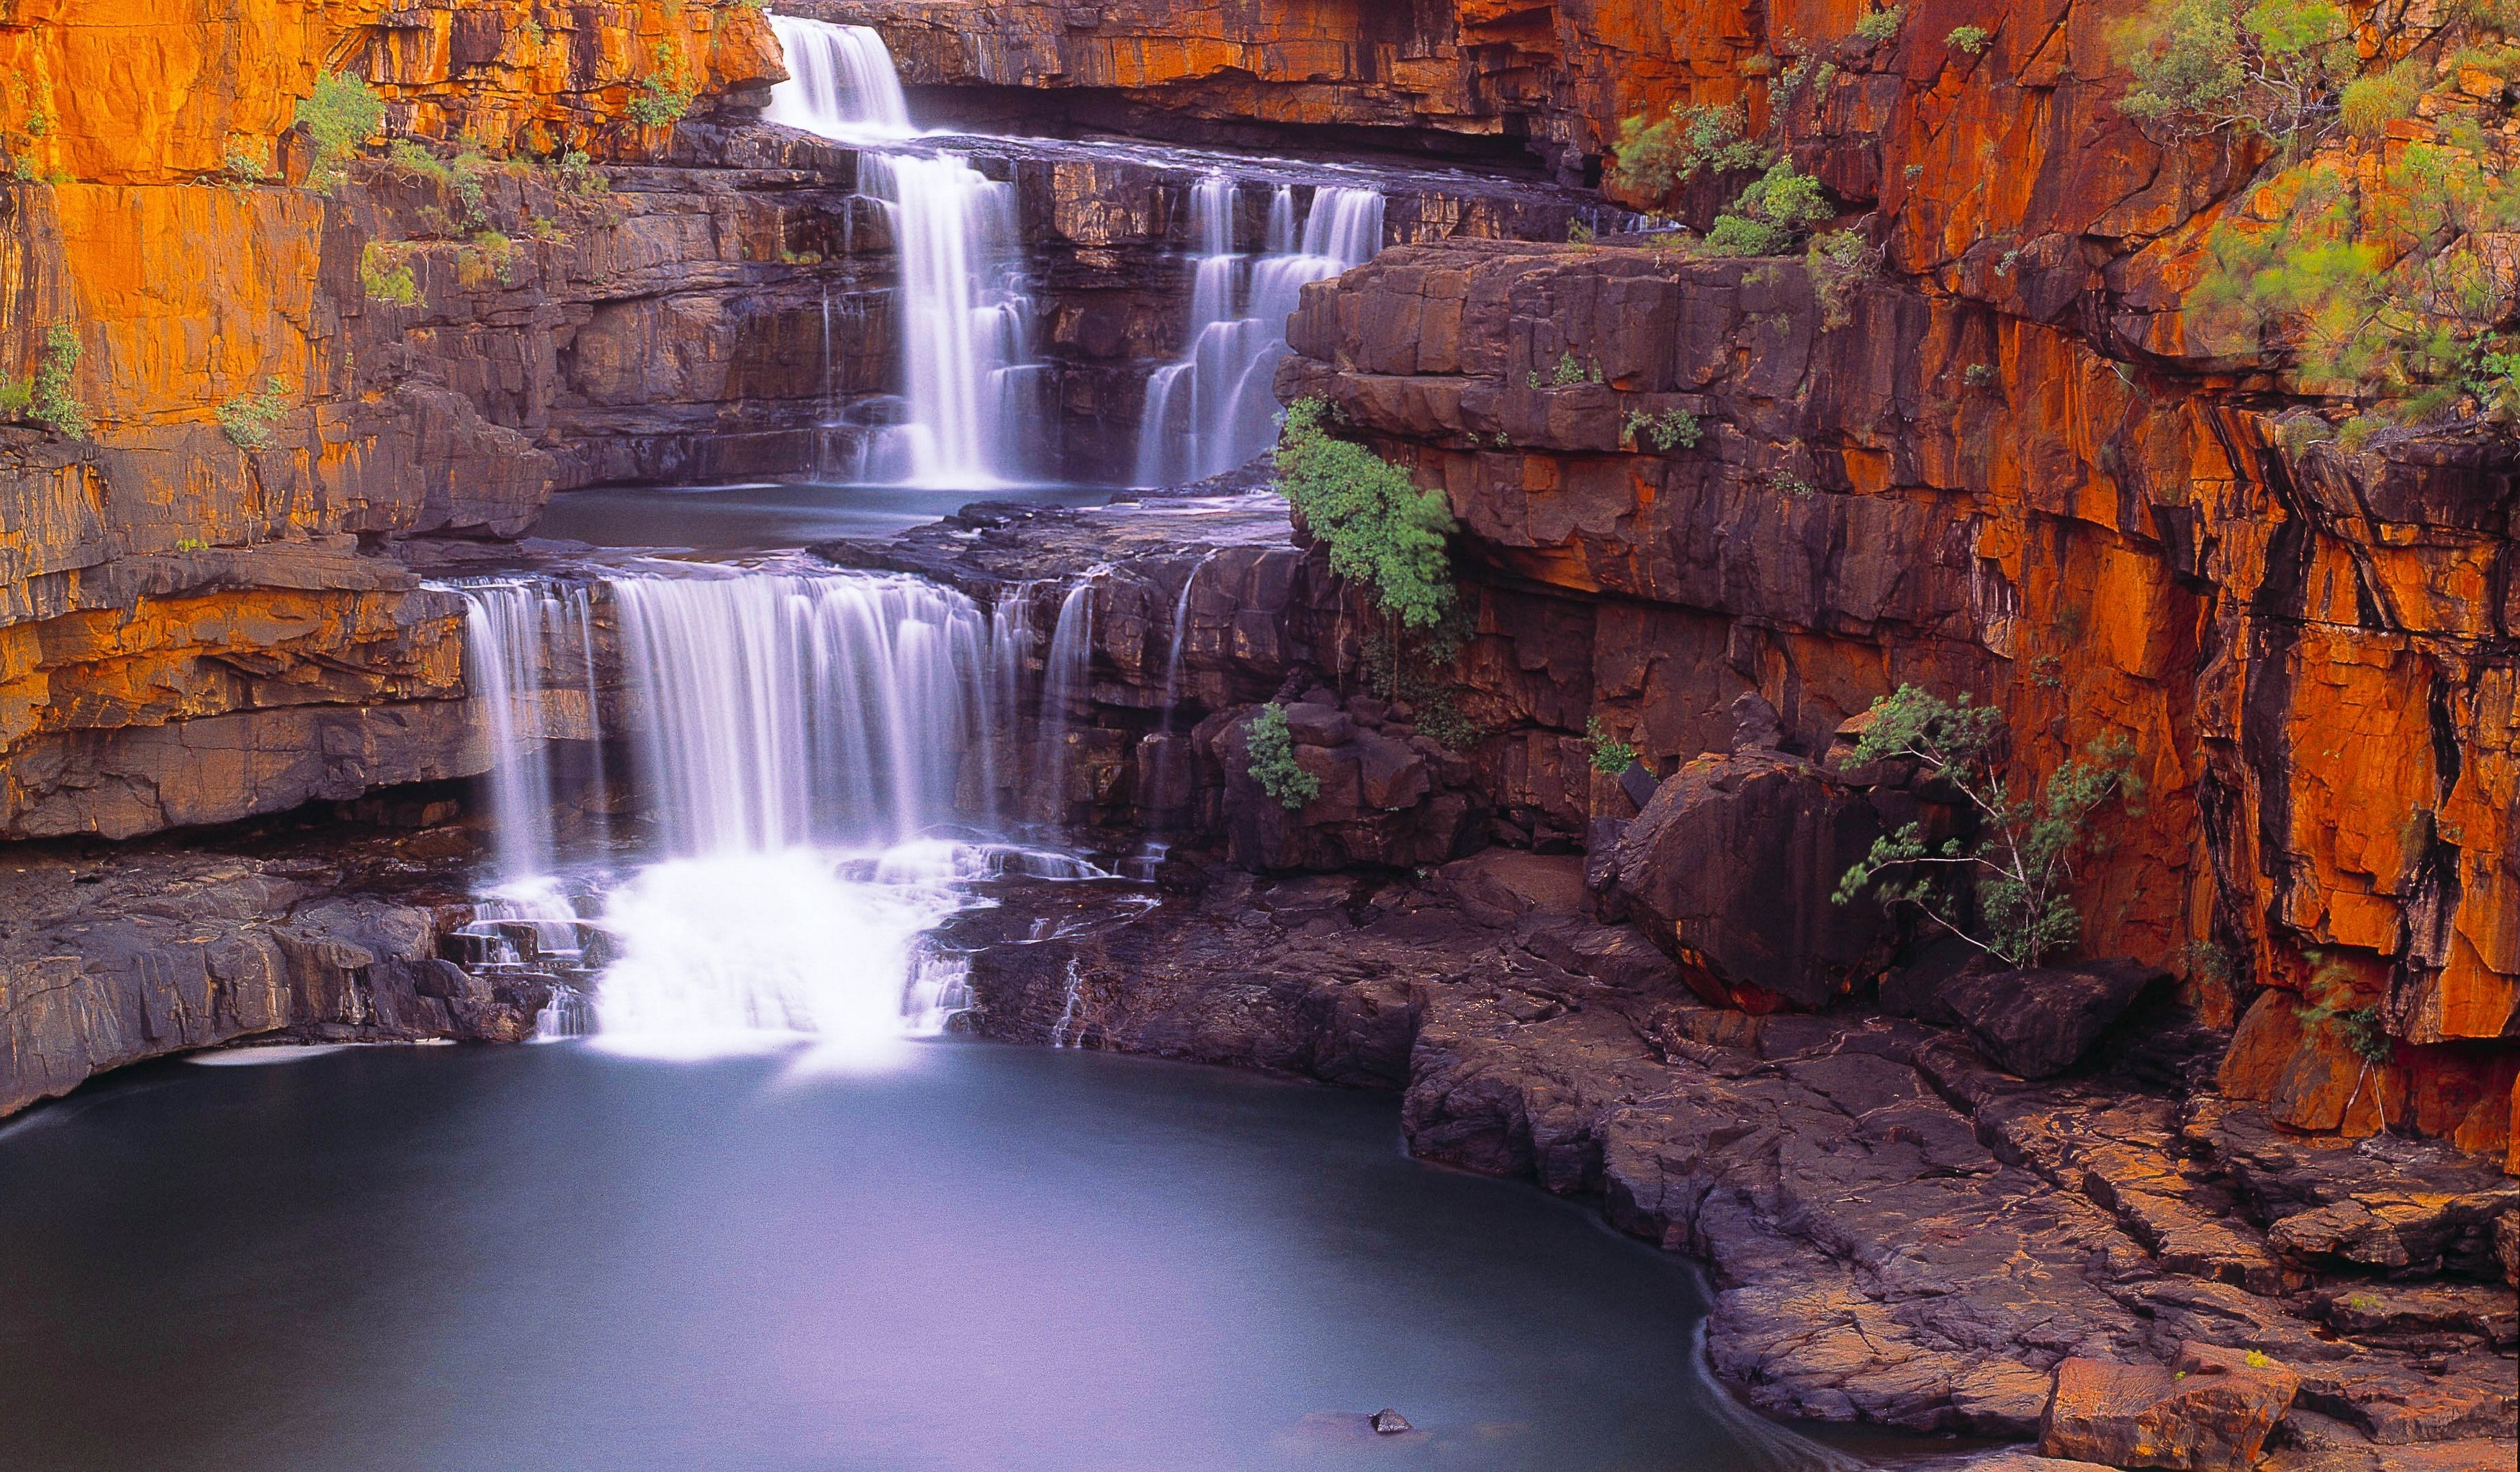 Water Fall Wallpaper Hd For Desktop Free Download Waterfall Nature Pond Rock Shrubs Australia